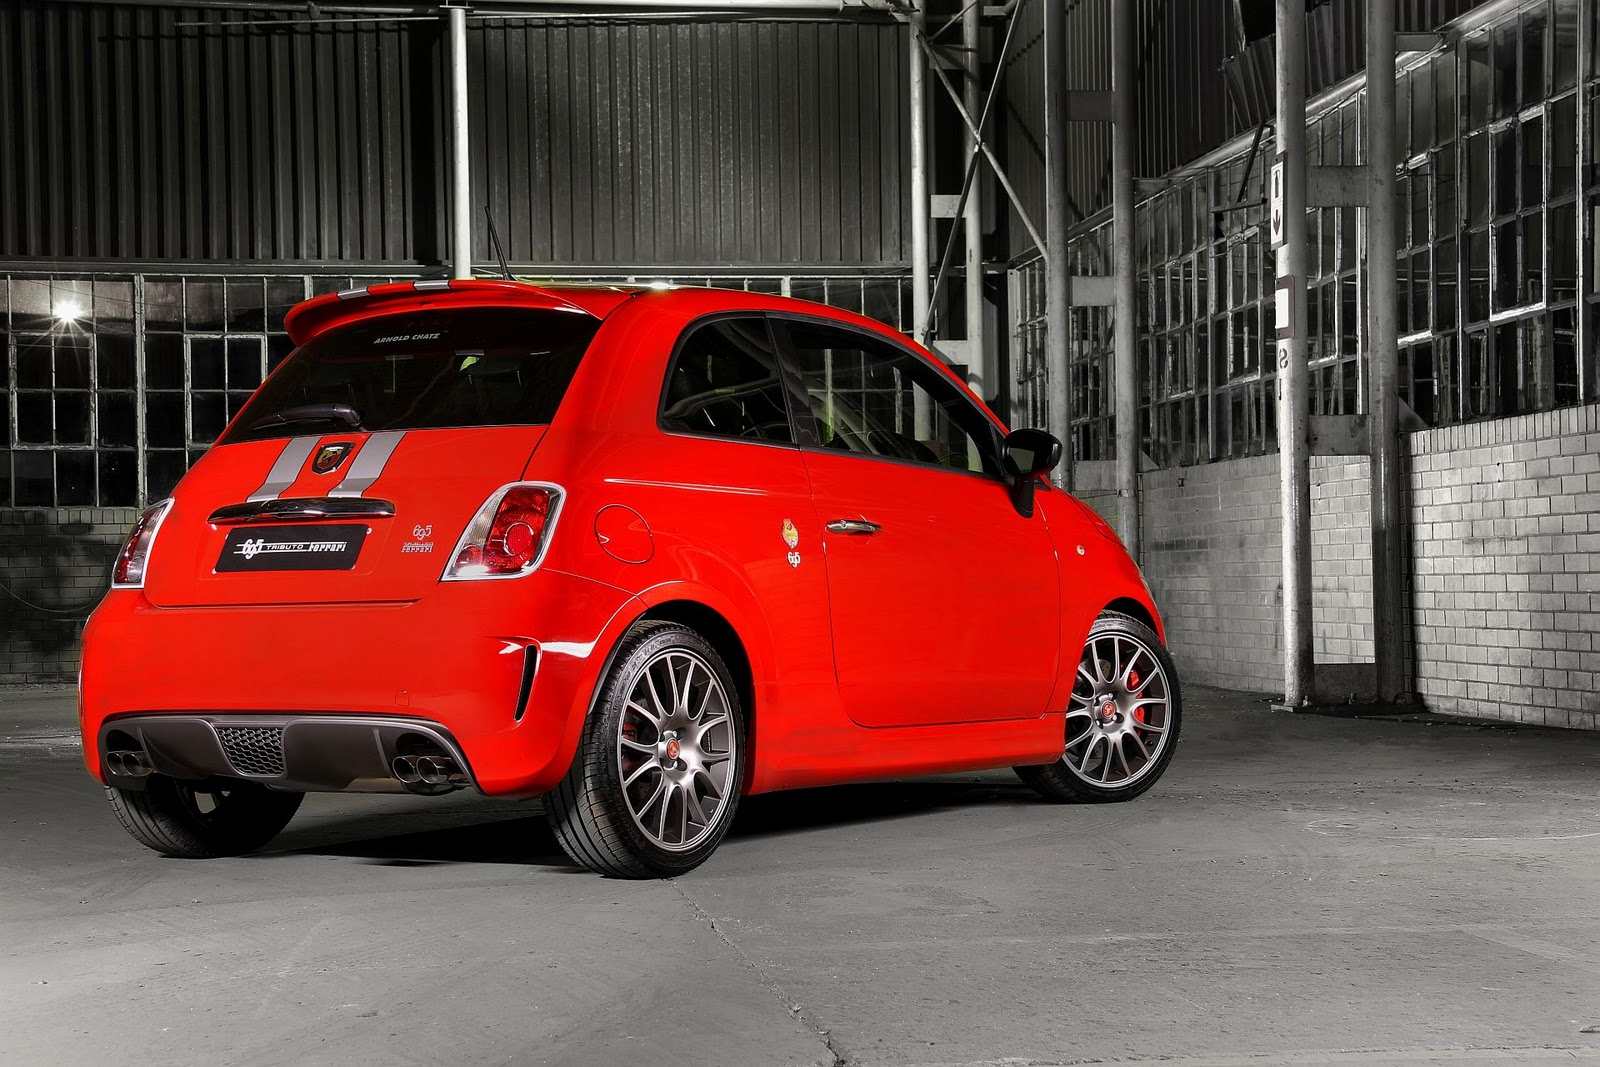 expensive fiat abarth 695 tributo ferrari now here bmw car gallery image. Black Bedroom Furniture Sets. Home Design Ideas